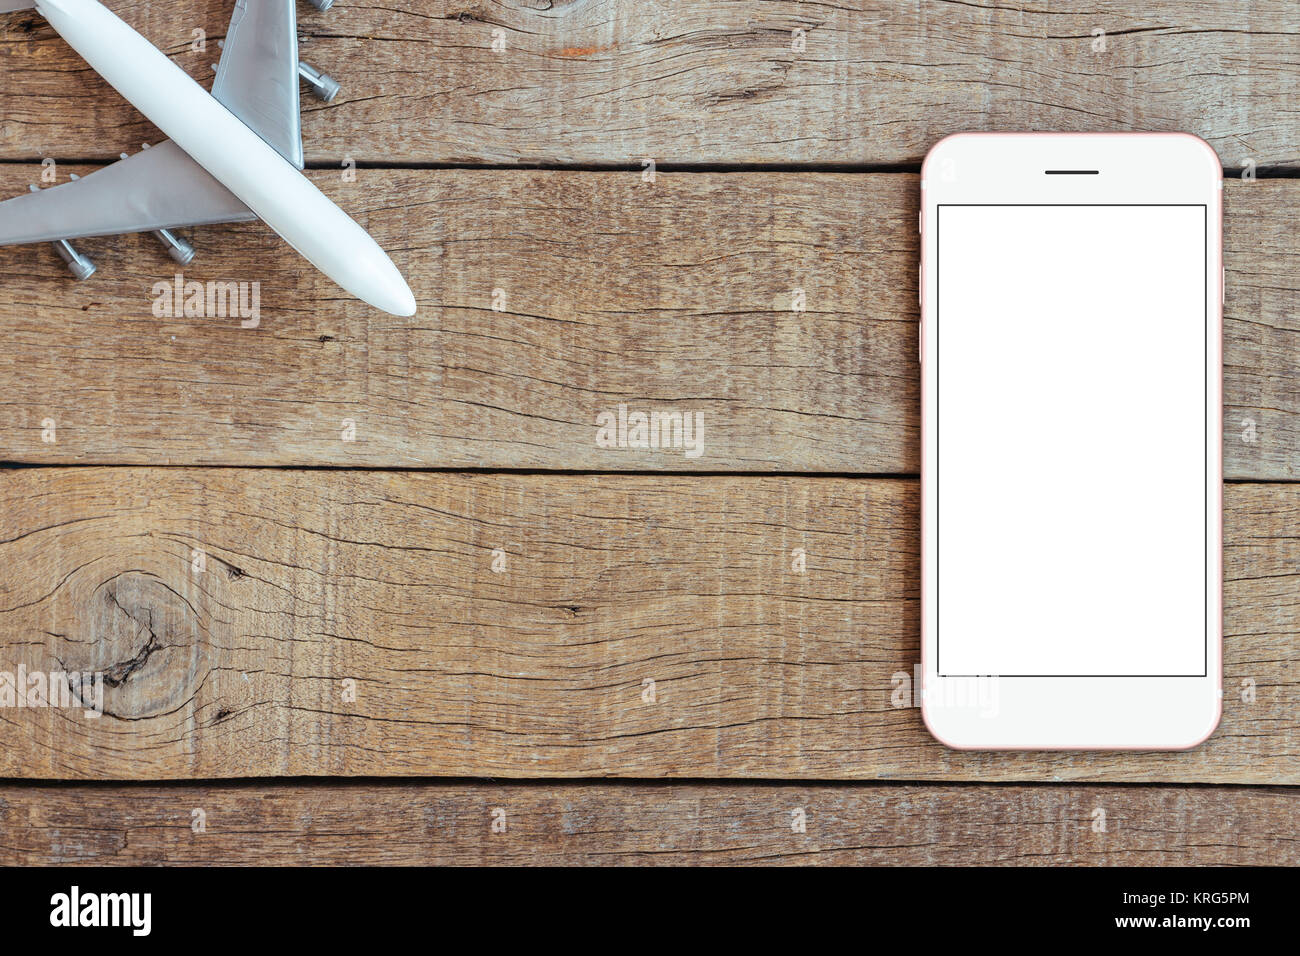 phone and airplane toy on wood table transport business concept top view, mock up phone blank screen - Stock Image